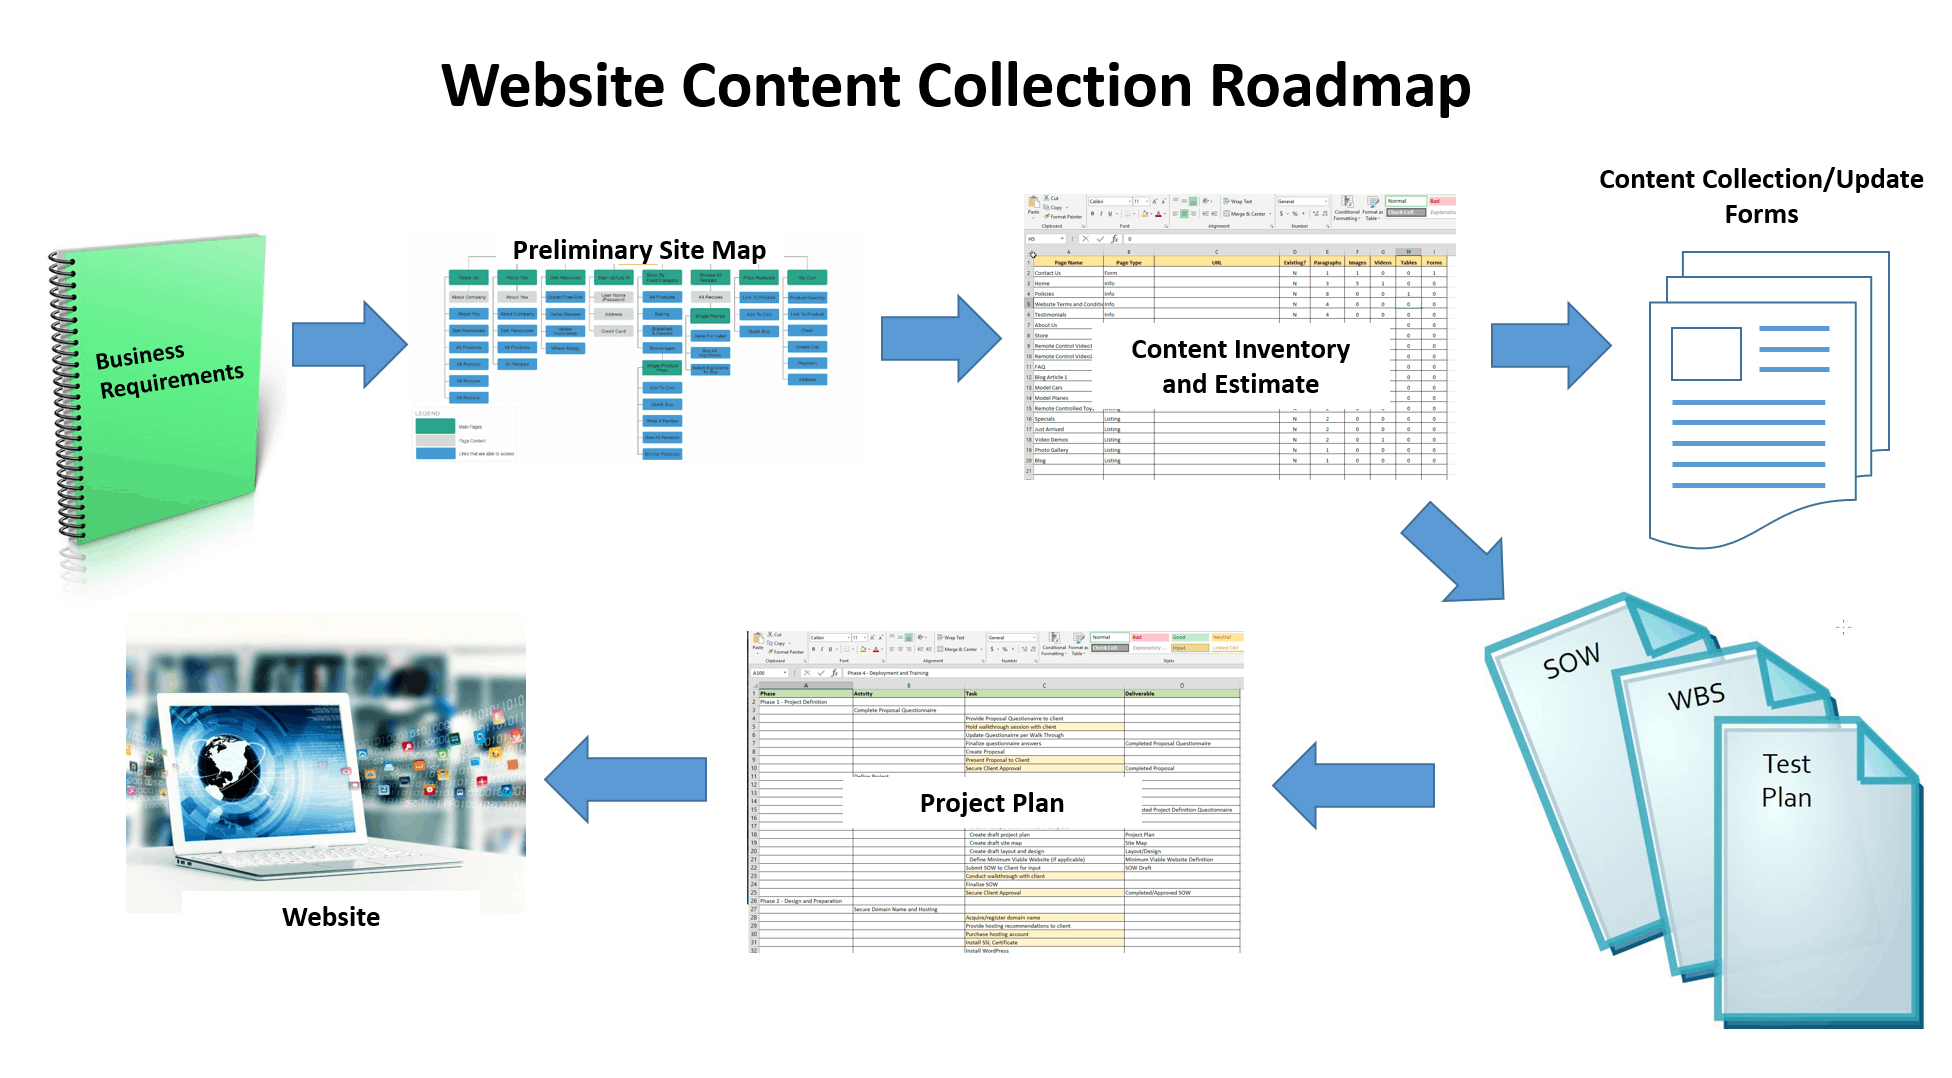 Website Content Collection Roadmap Graphic